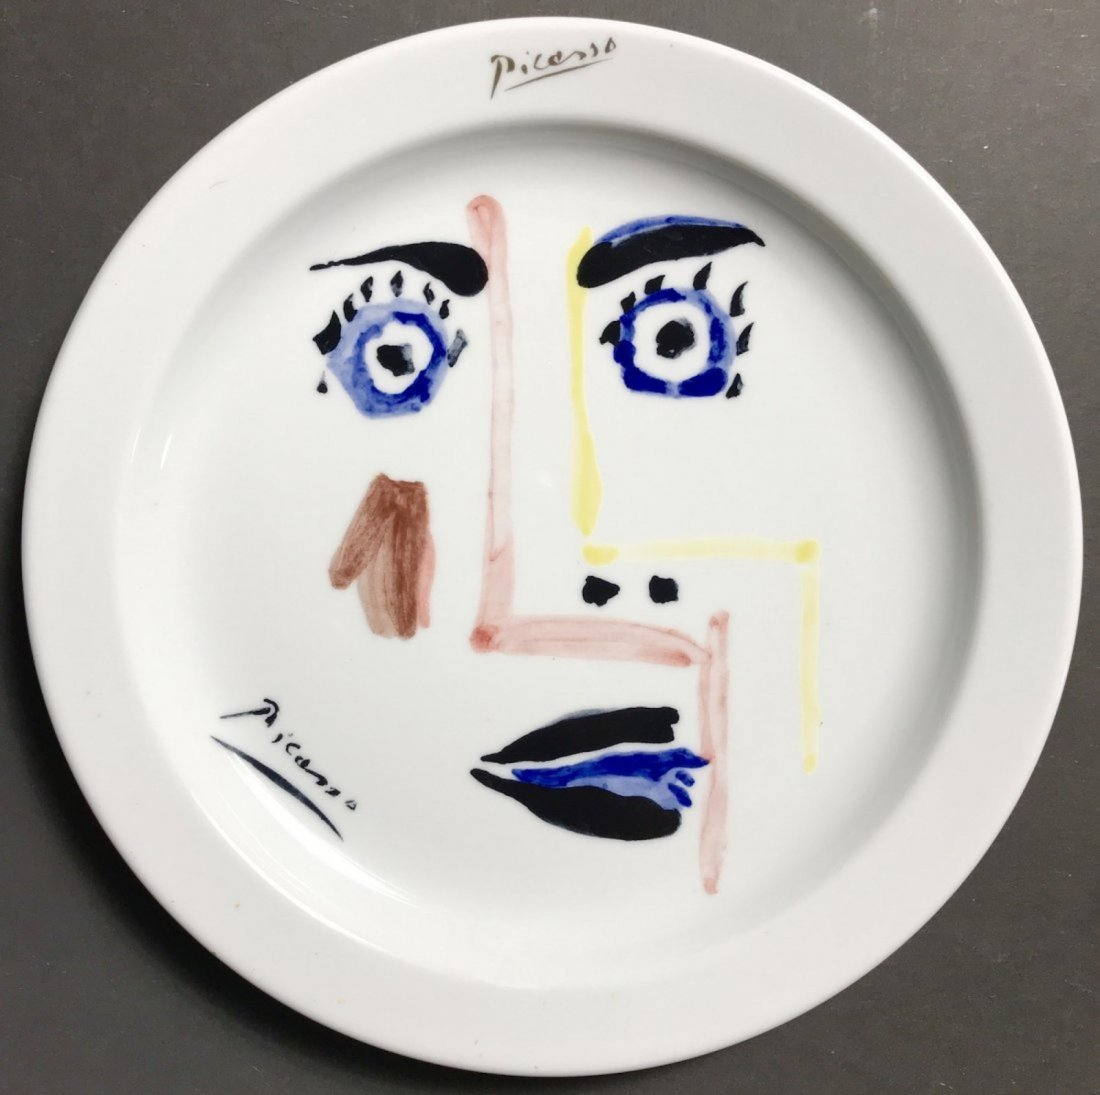 Picasso Plate